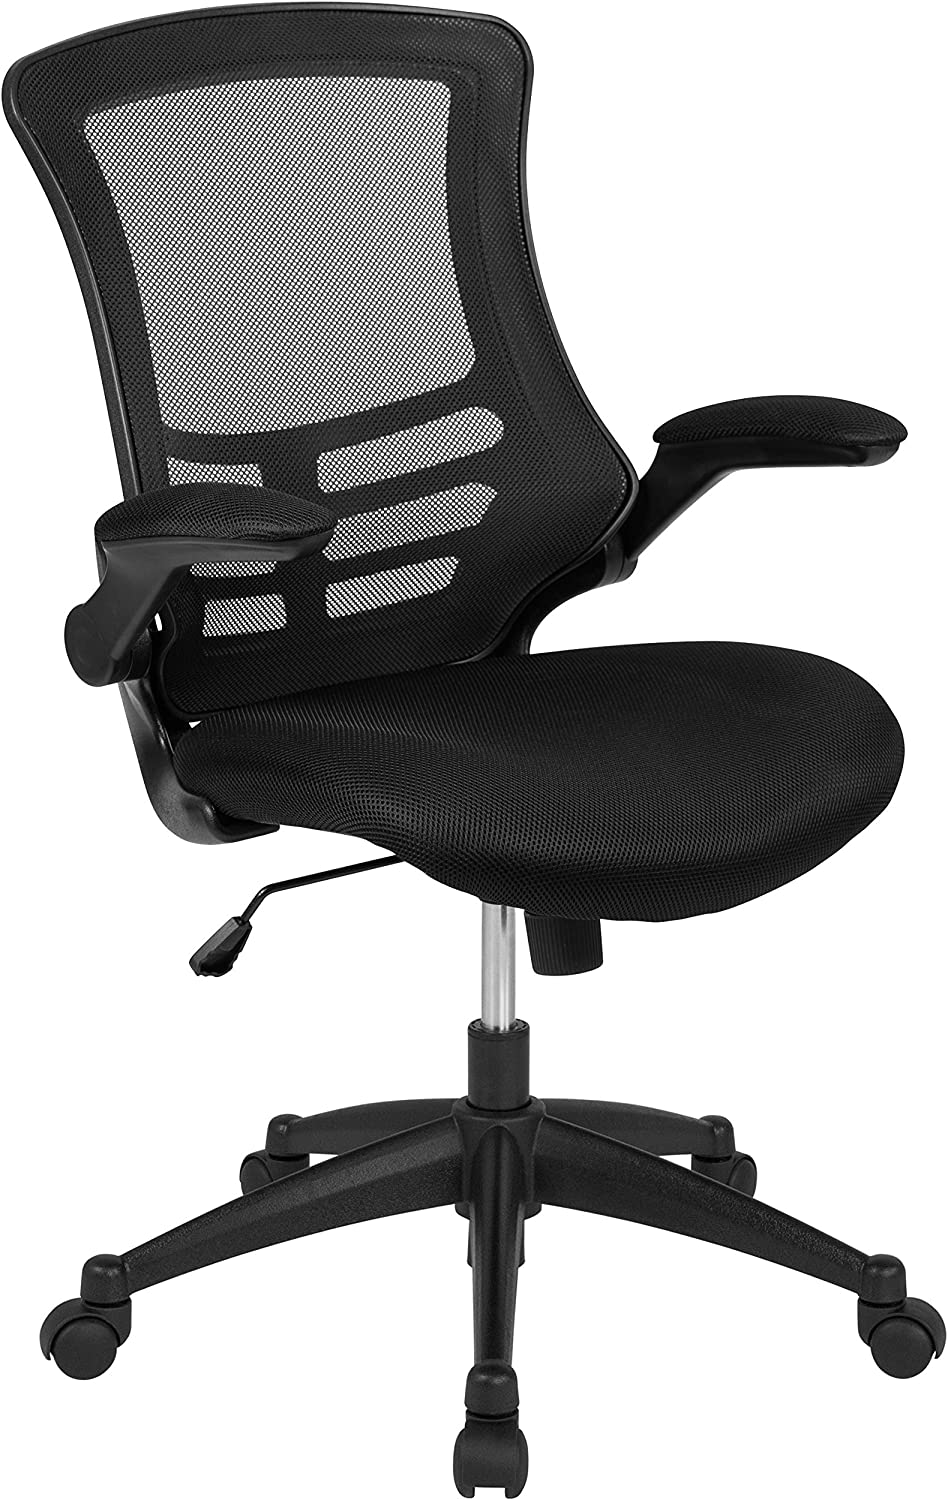 10 Best Ergonomic Office Chair Under 200 : Buyers Guide 2021 10